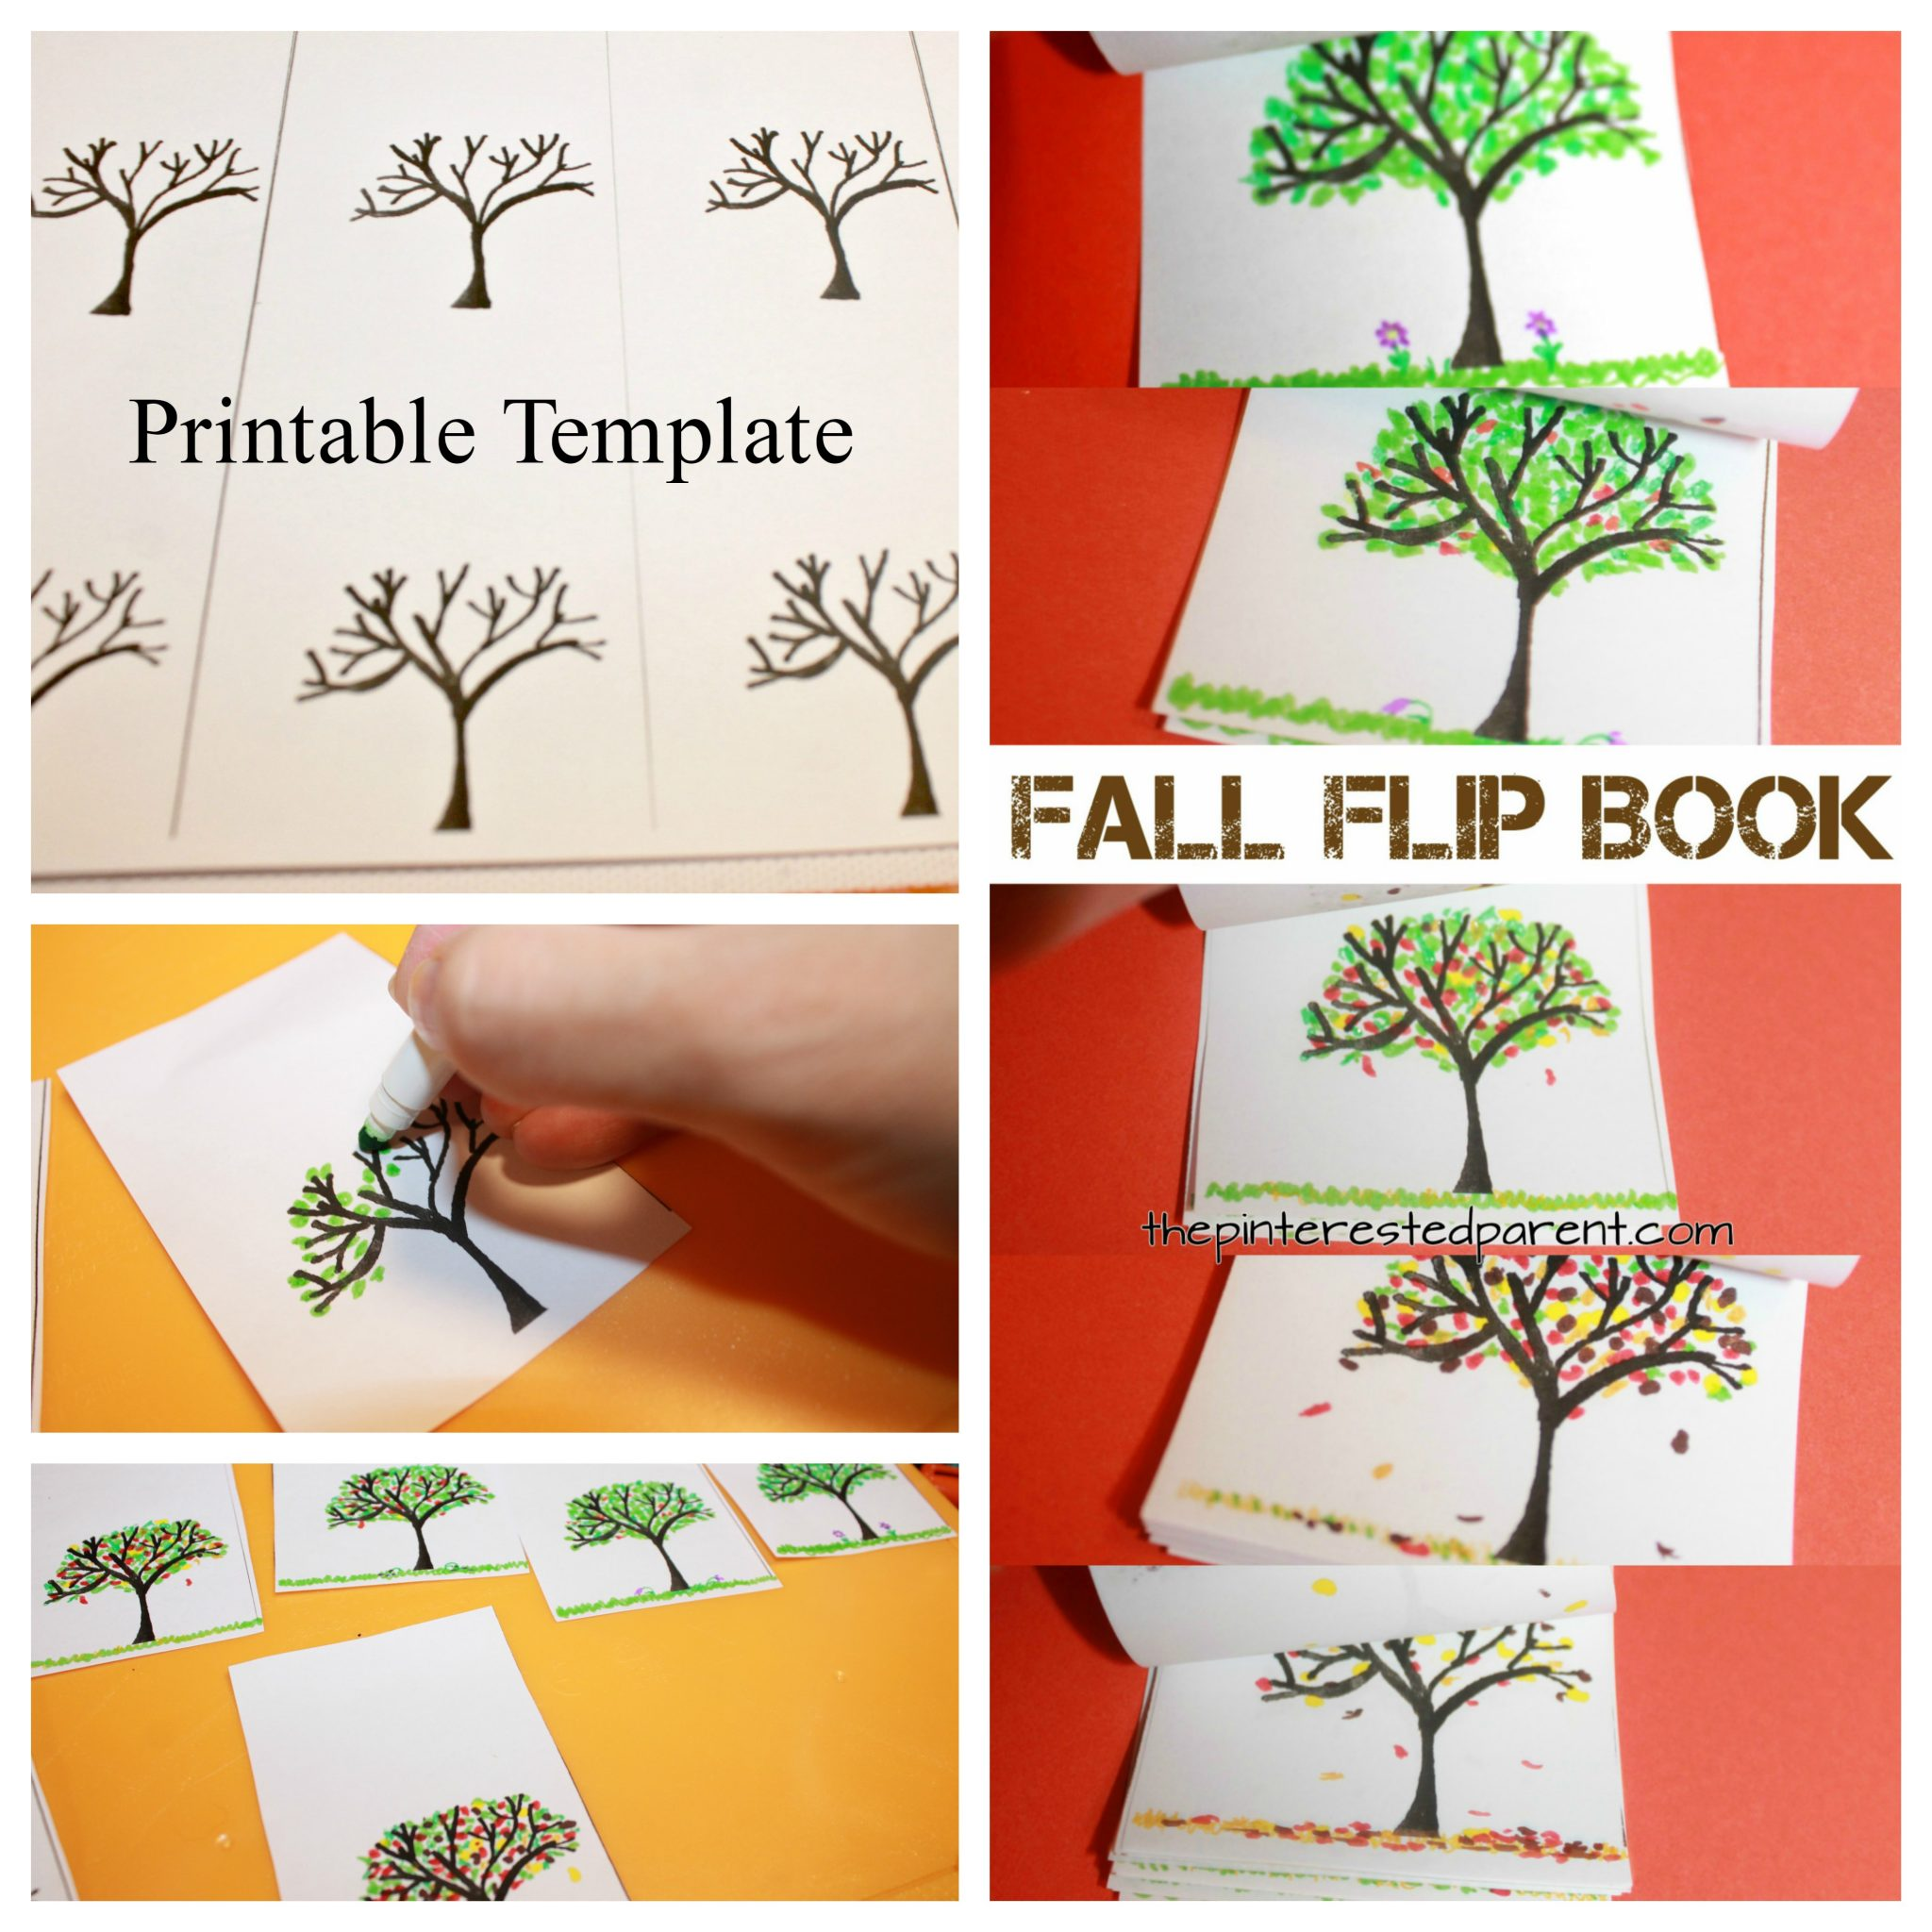 photo relating to Flip Book Template Printable referred to as Tumble Tree Change Ebook The Pinterested Guardian